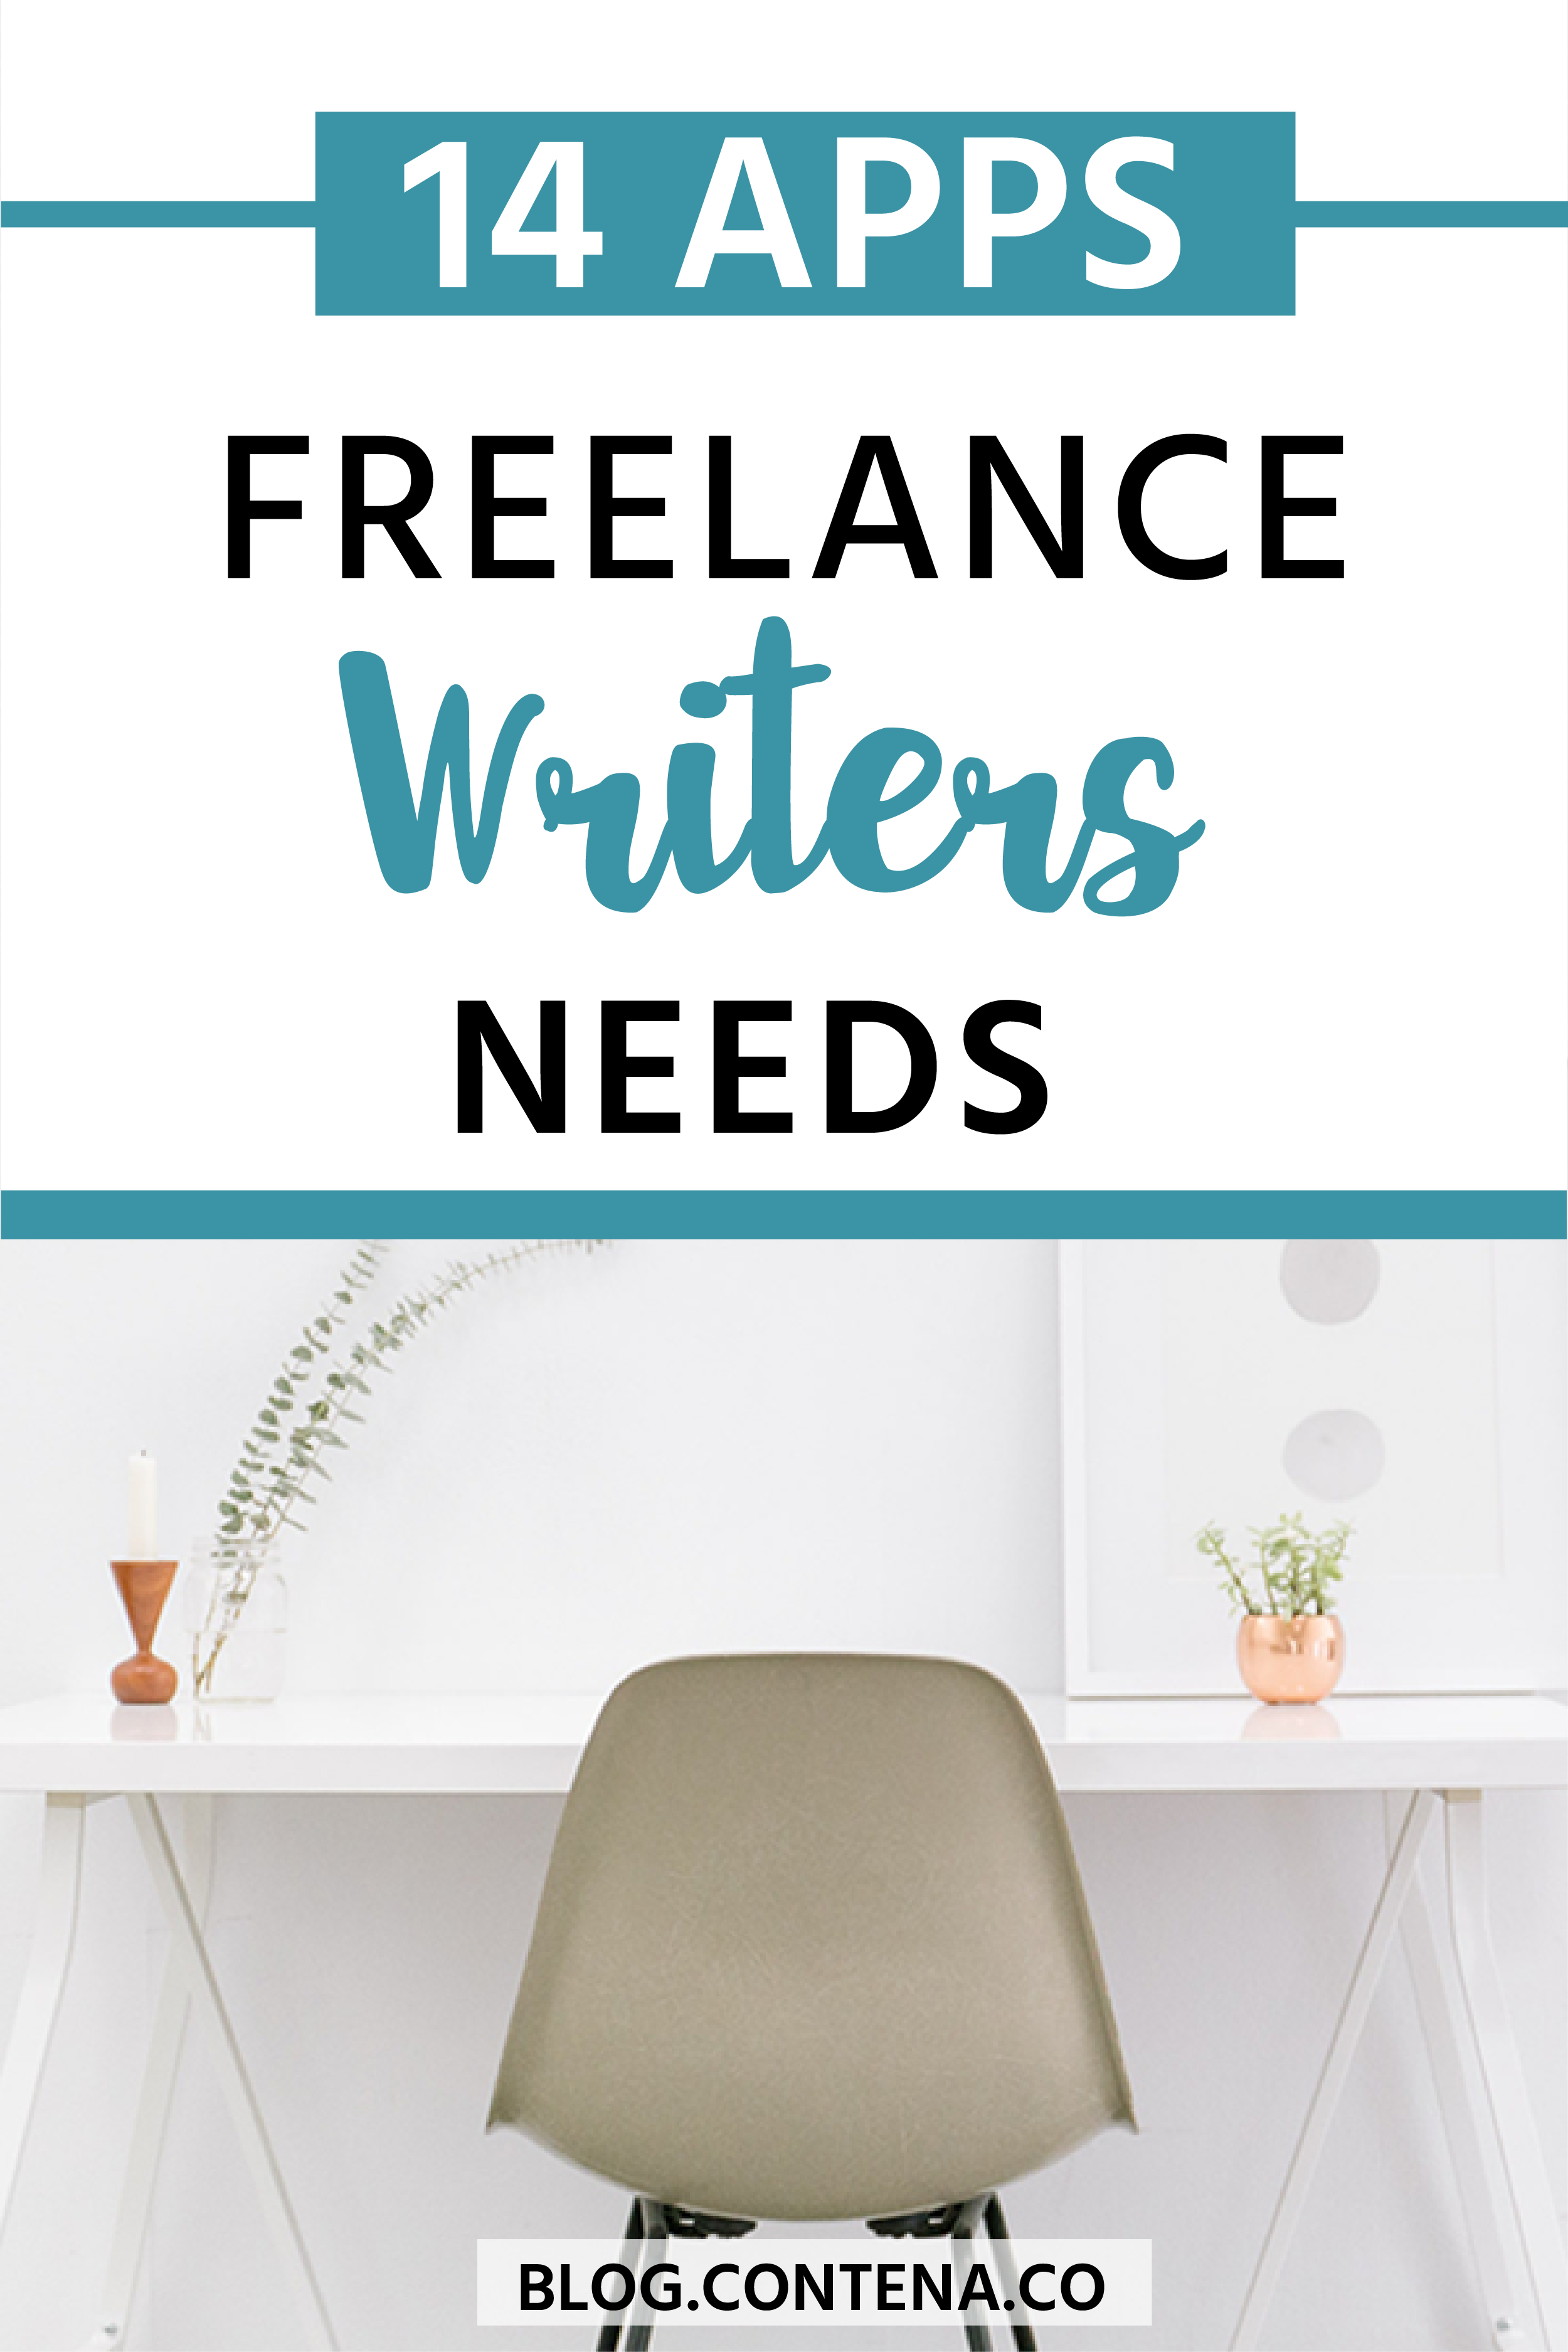 These are the apps freelance writers need. Apps to improve your freelancing business, from apps for money, organizing, and productivity to being a better writer, this article is filled with tips on the best apps for freelance writing. #FreelanceWriting #Freelancer #WorkFromHome #SideHustle #Money #OnlineBusiness #Writing #WritingJobs #Money